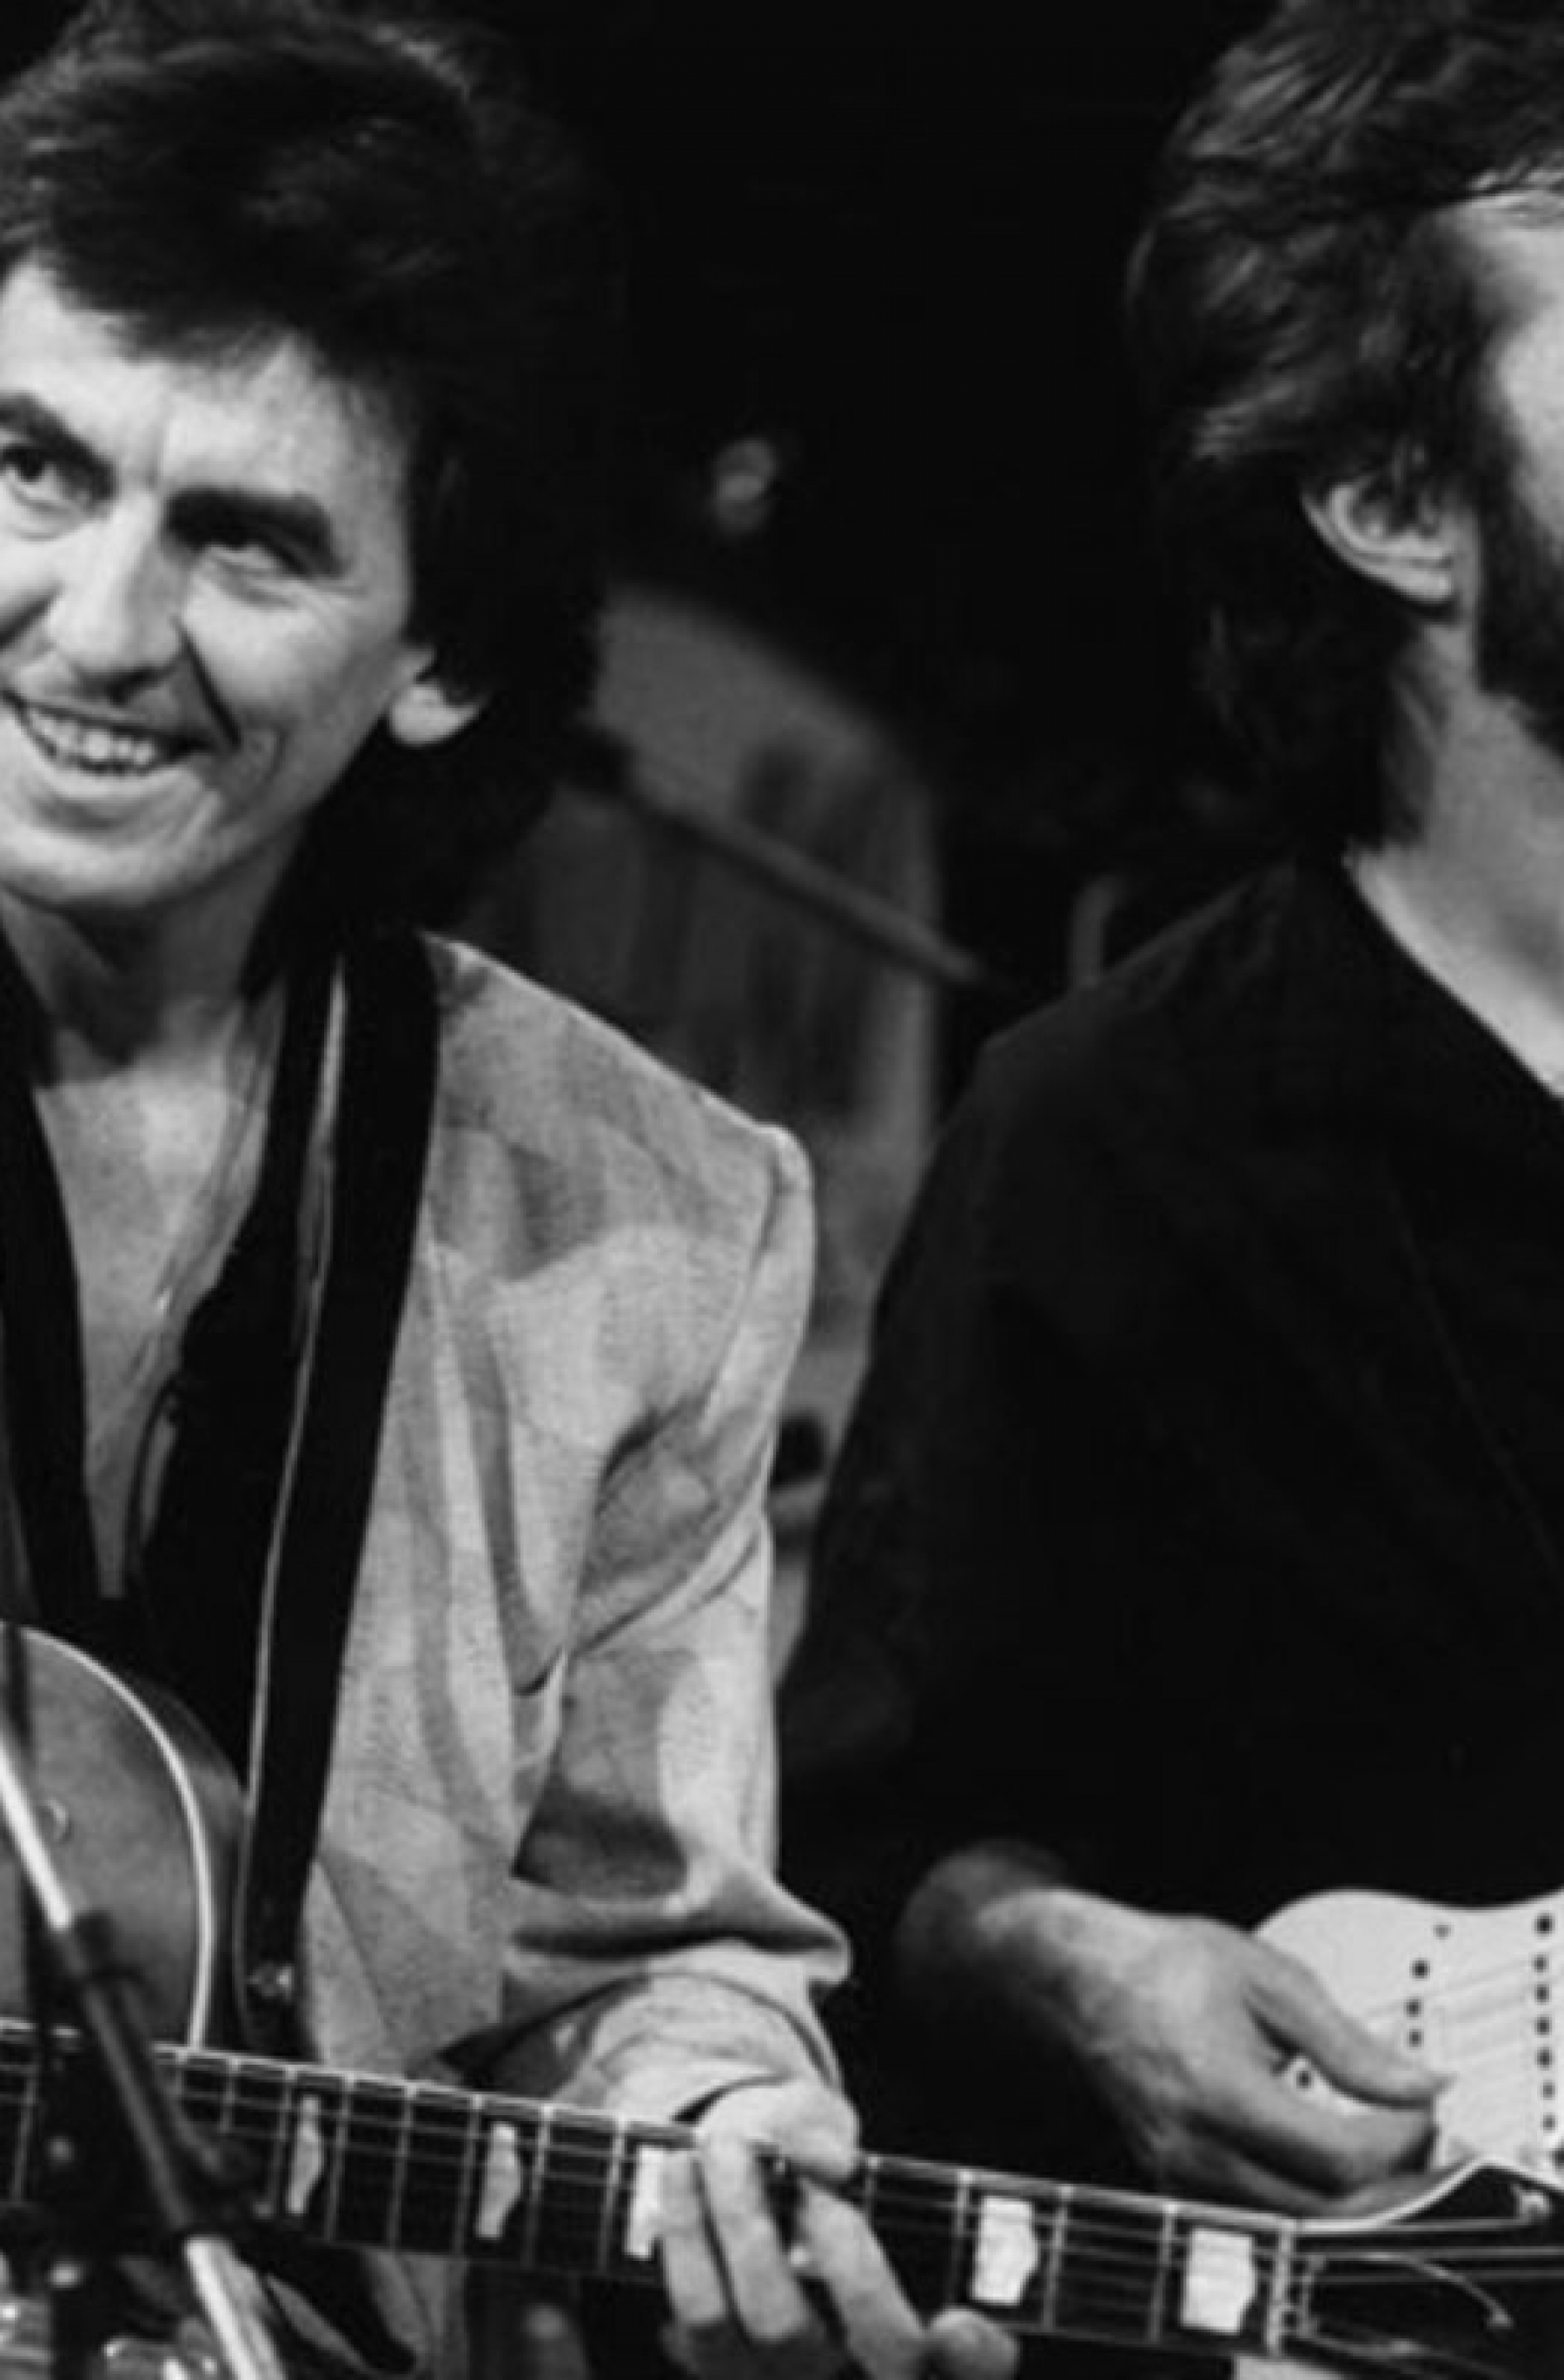 george-harrison-and-eric-clapton-share-a-laugh-on-october-23-1985